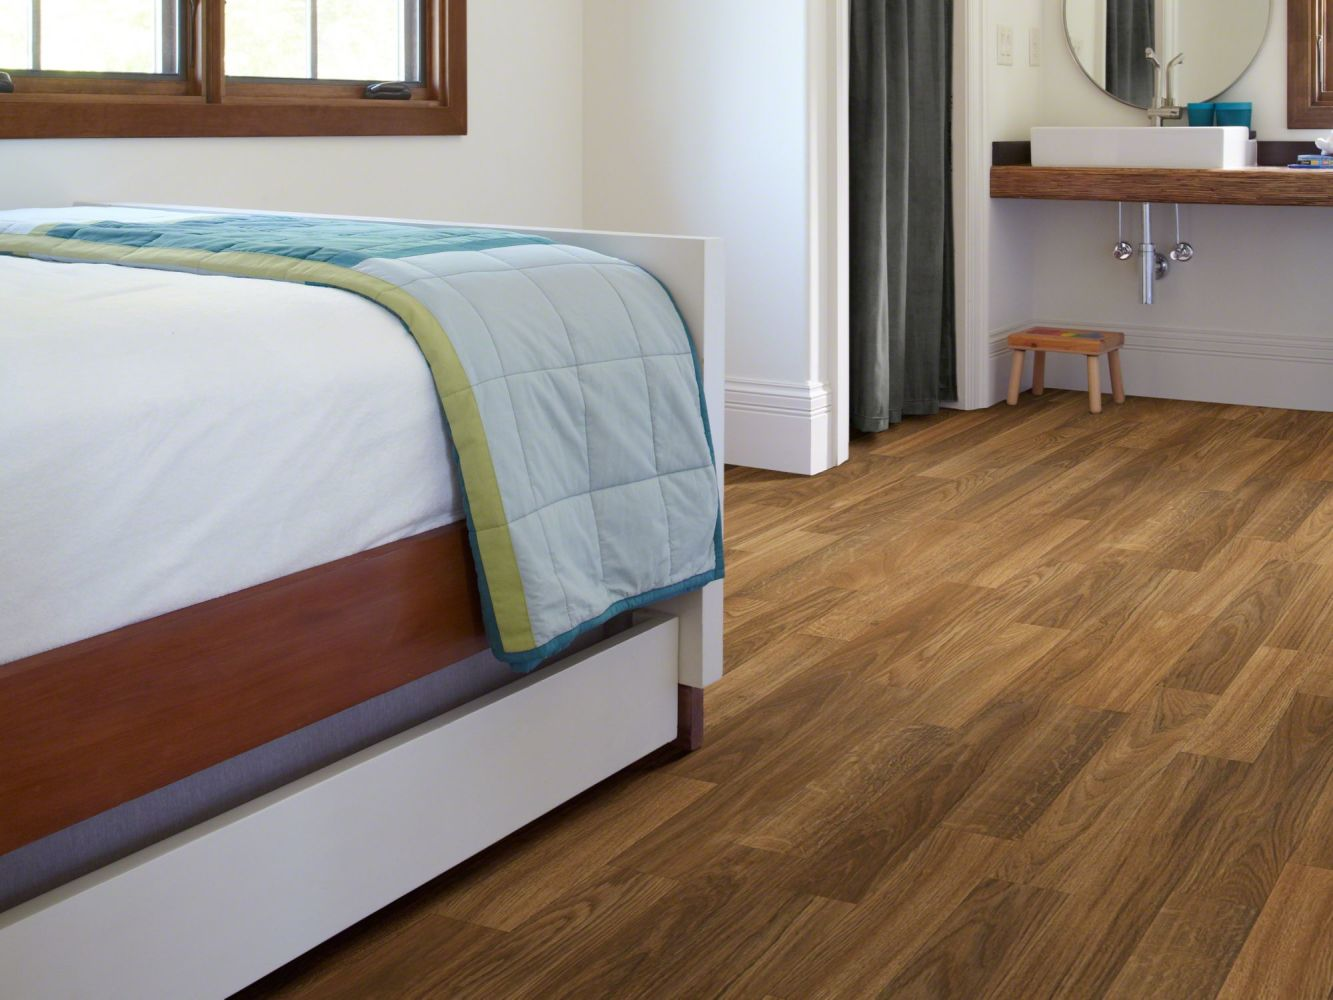 Shaw Floors Resilient Property Solutions Compact 12 Shasta 00609_VG061